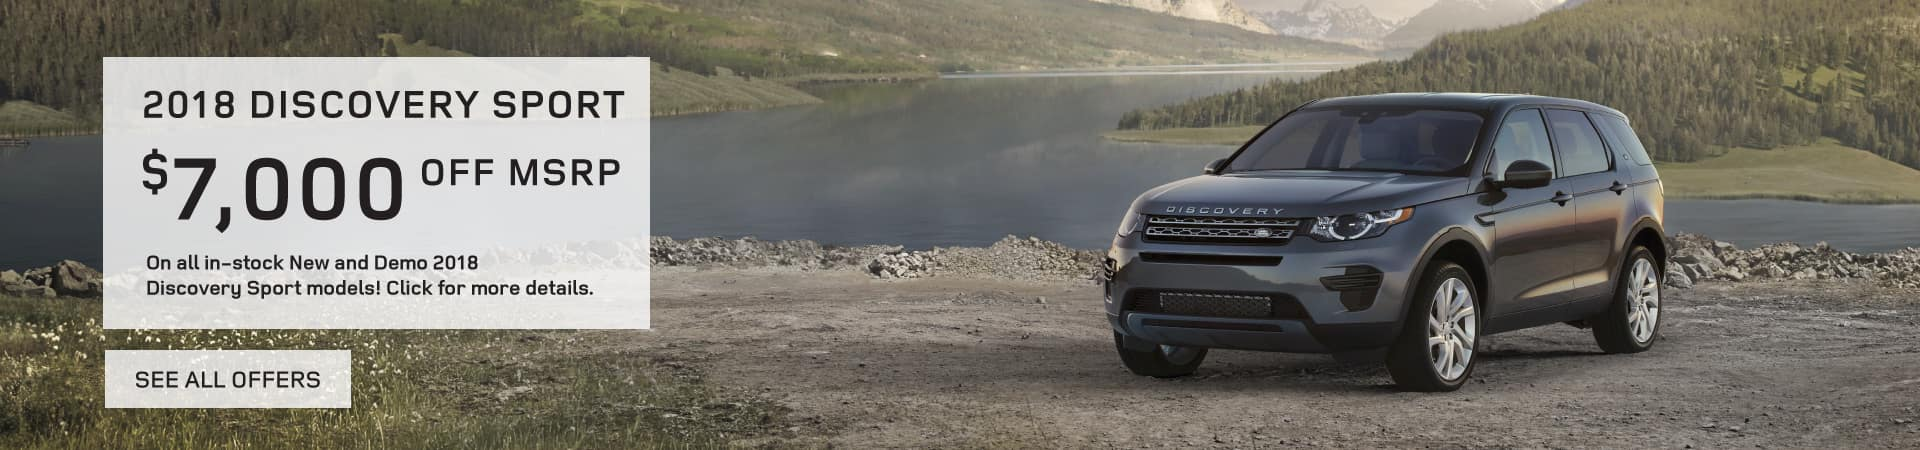 Autobahn Land Rover - Discover Sports $7,000 off MSRP